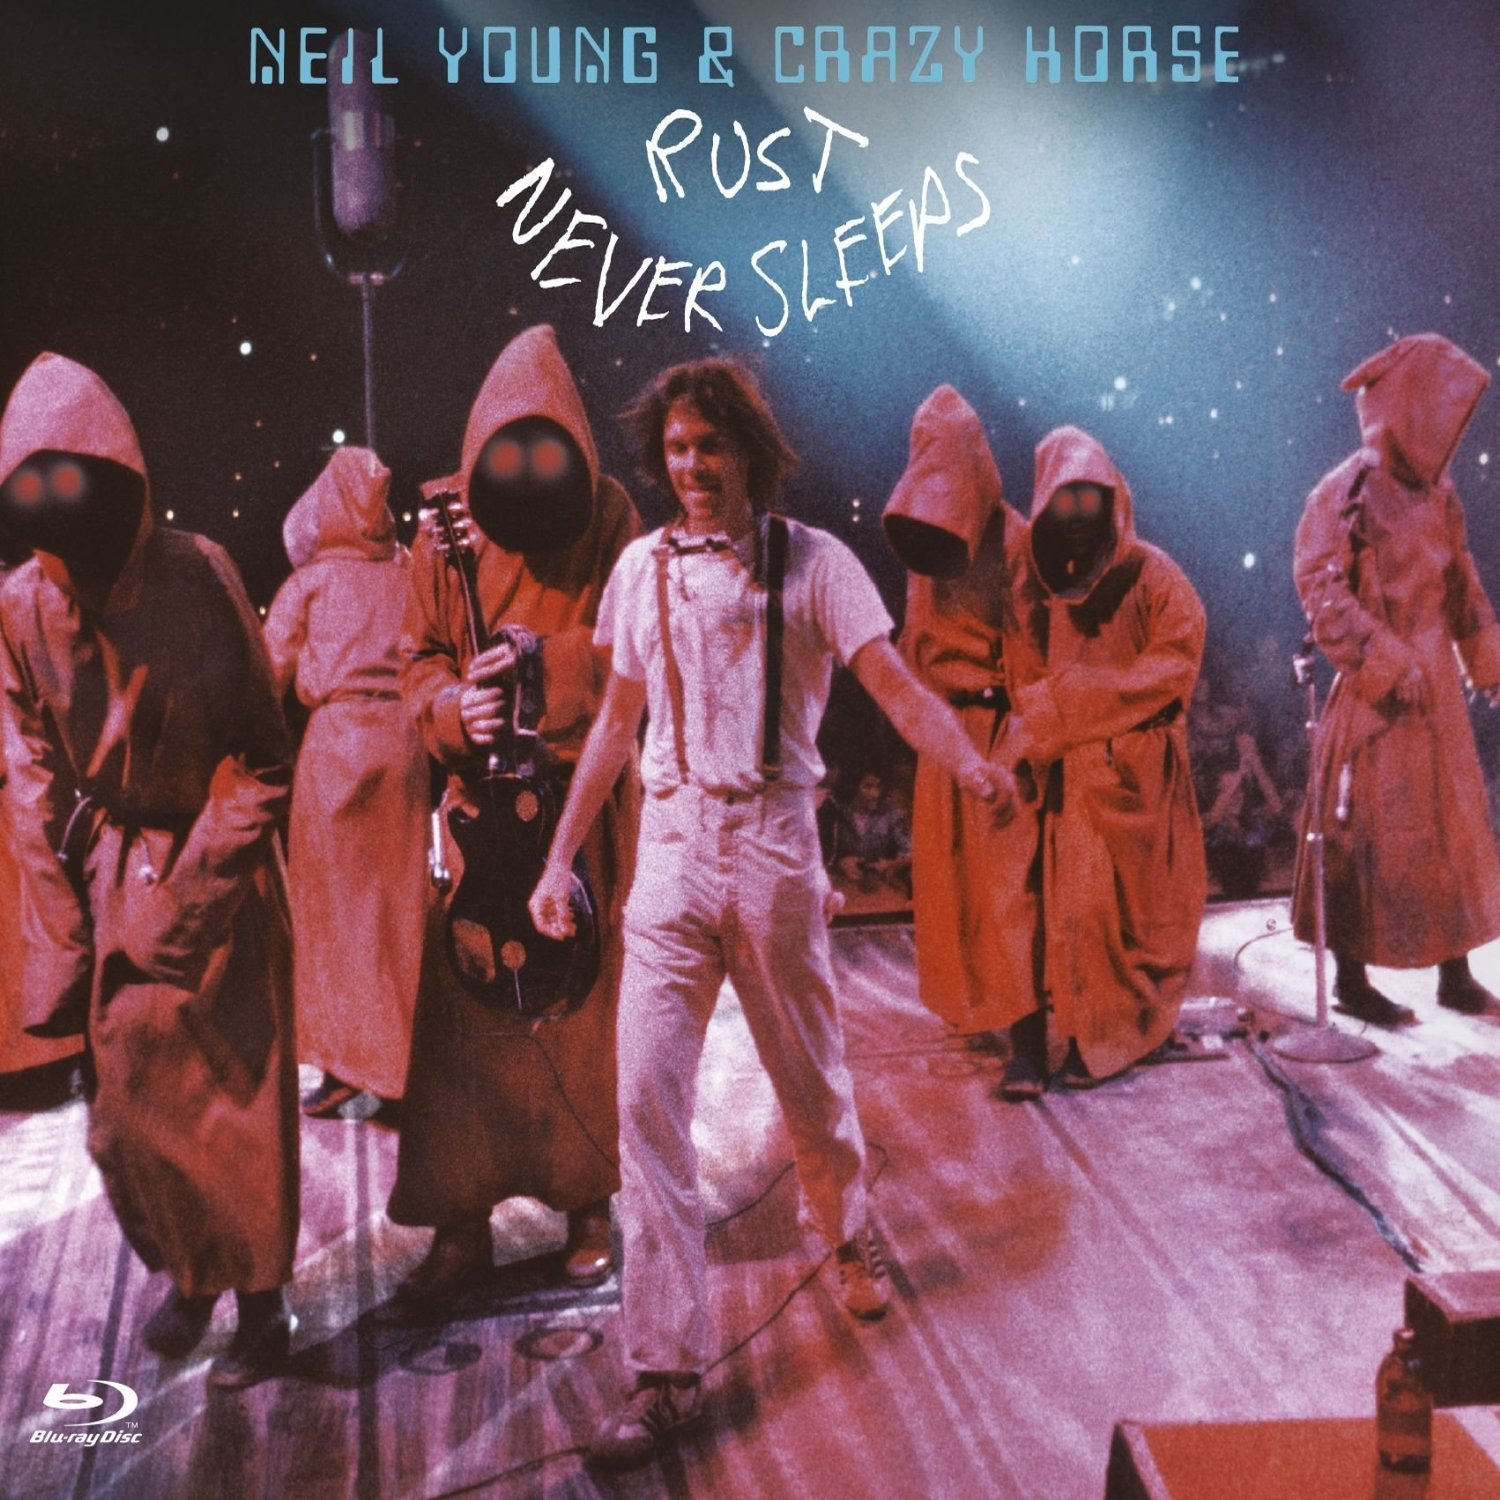 Neil Young & Crazy Horse - Rust Never Sleeps on Blu-ray image